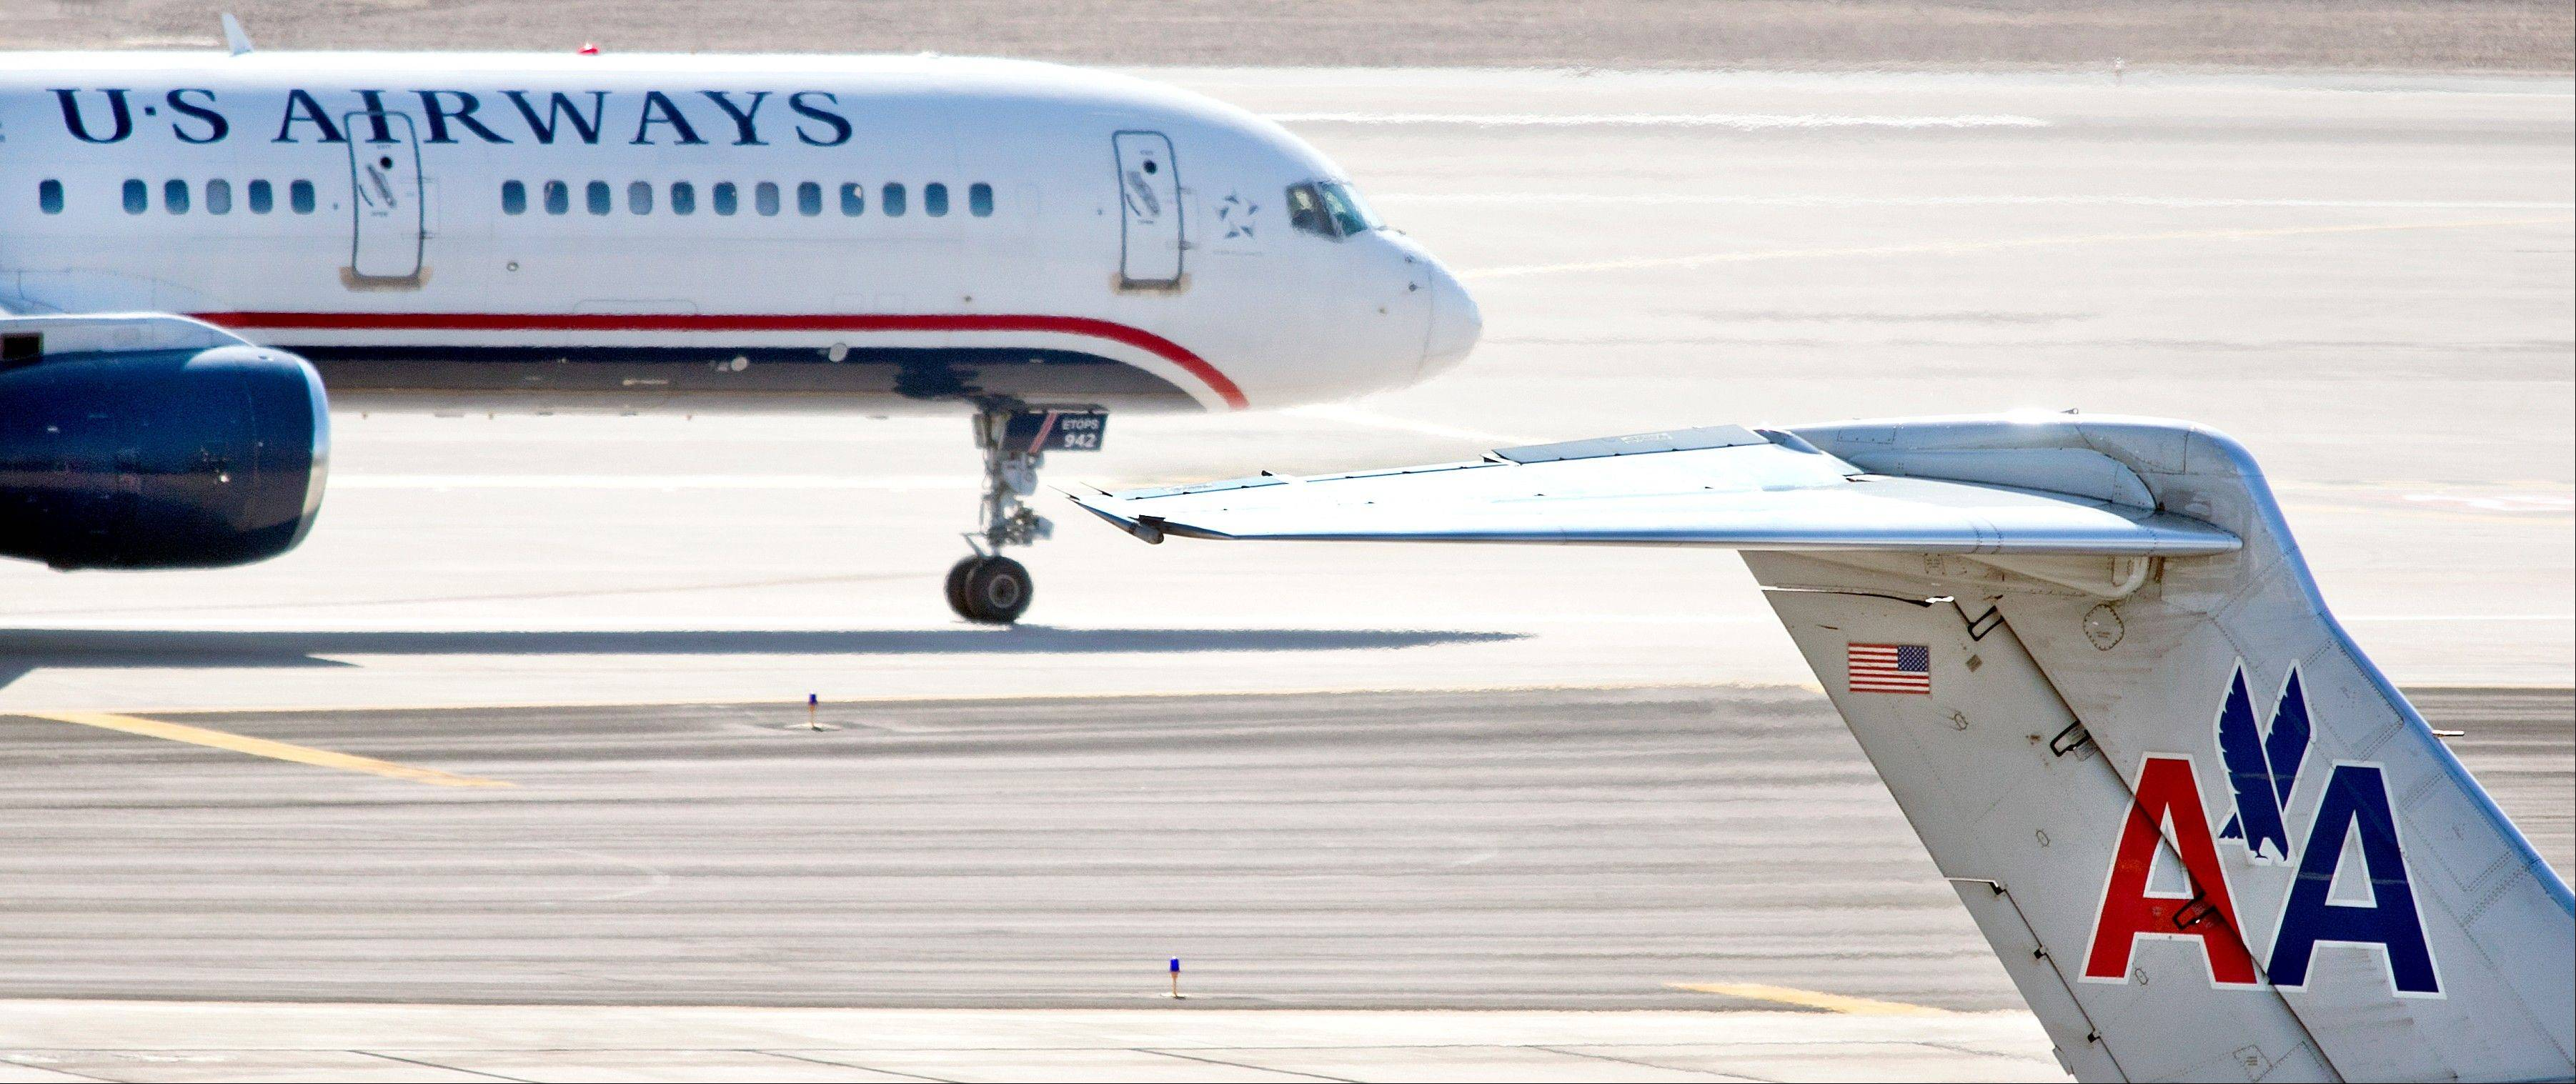 American, U.S. Airways announce $11 billion merger